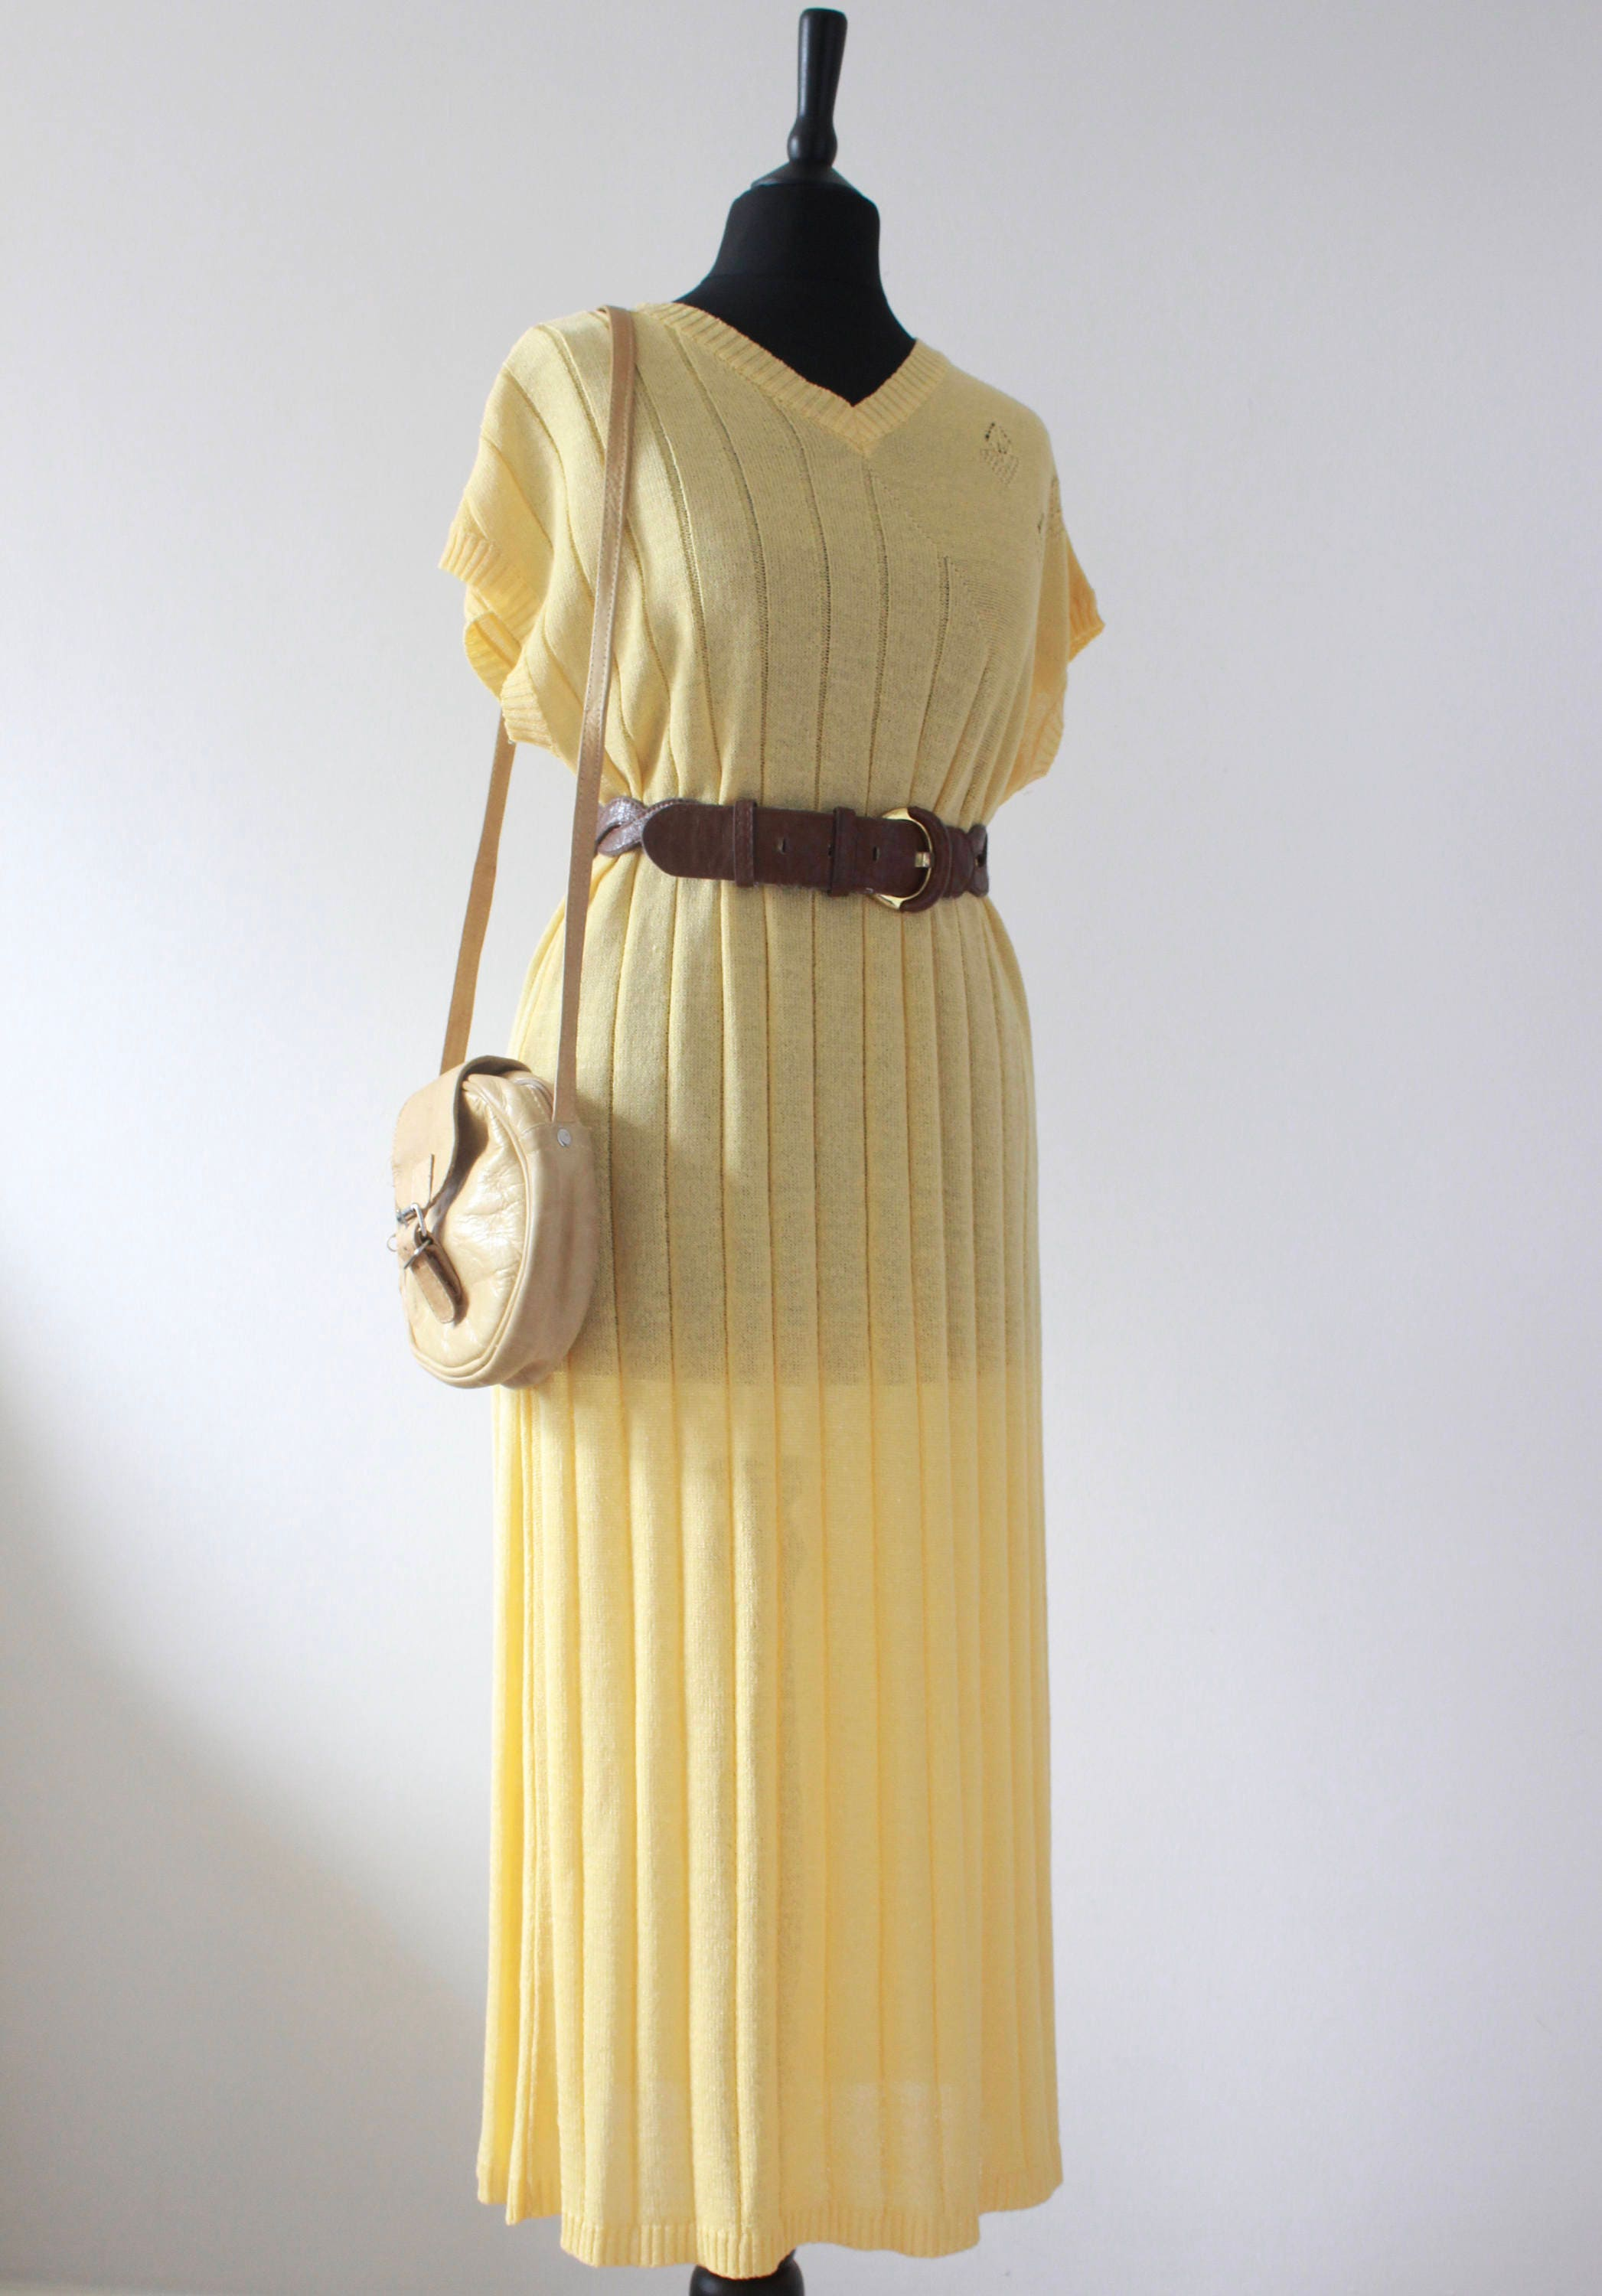 70s Vintage Knitted Dress Lemon Yellow VINTAGE 1970S 80S Dress Casual Midi Day Dress Batwing Knitted Dress UK M Medium